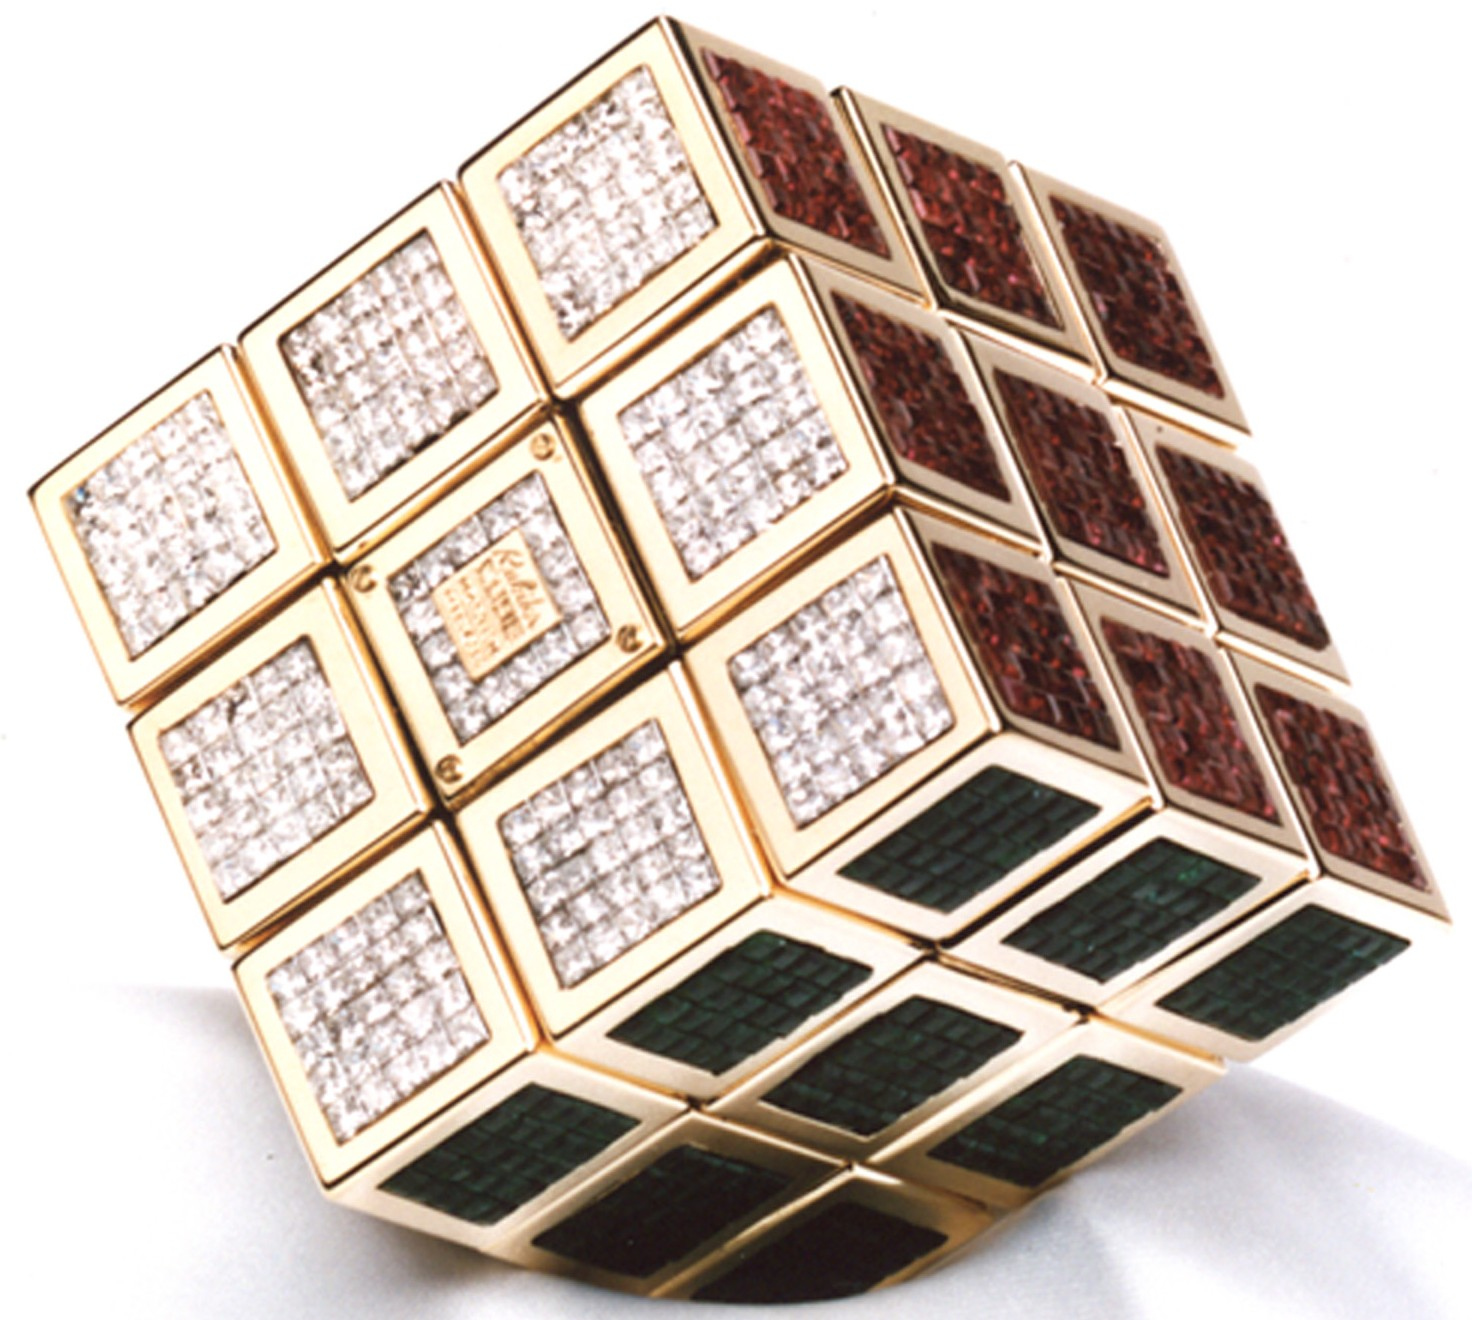 the world s most expensive rubik s cube 7rl playing in the world game. Black Bedroom Furniture Sets. Home Design Ideas